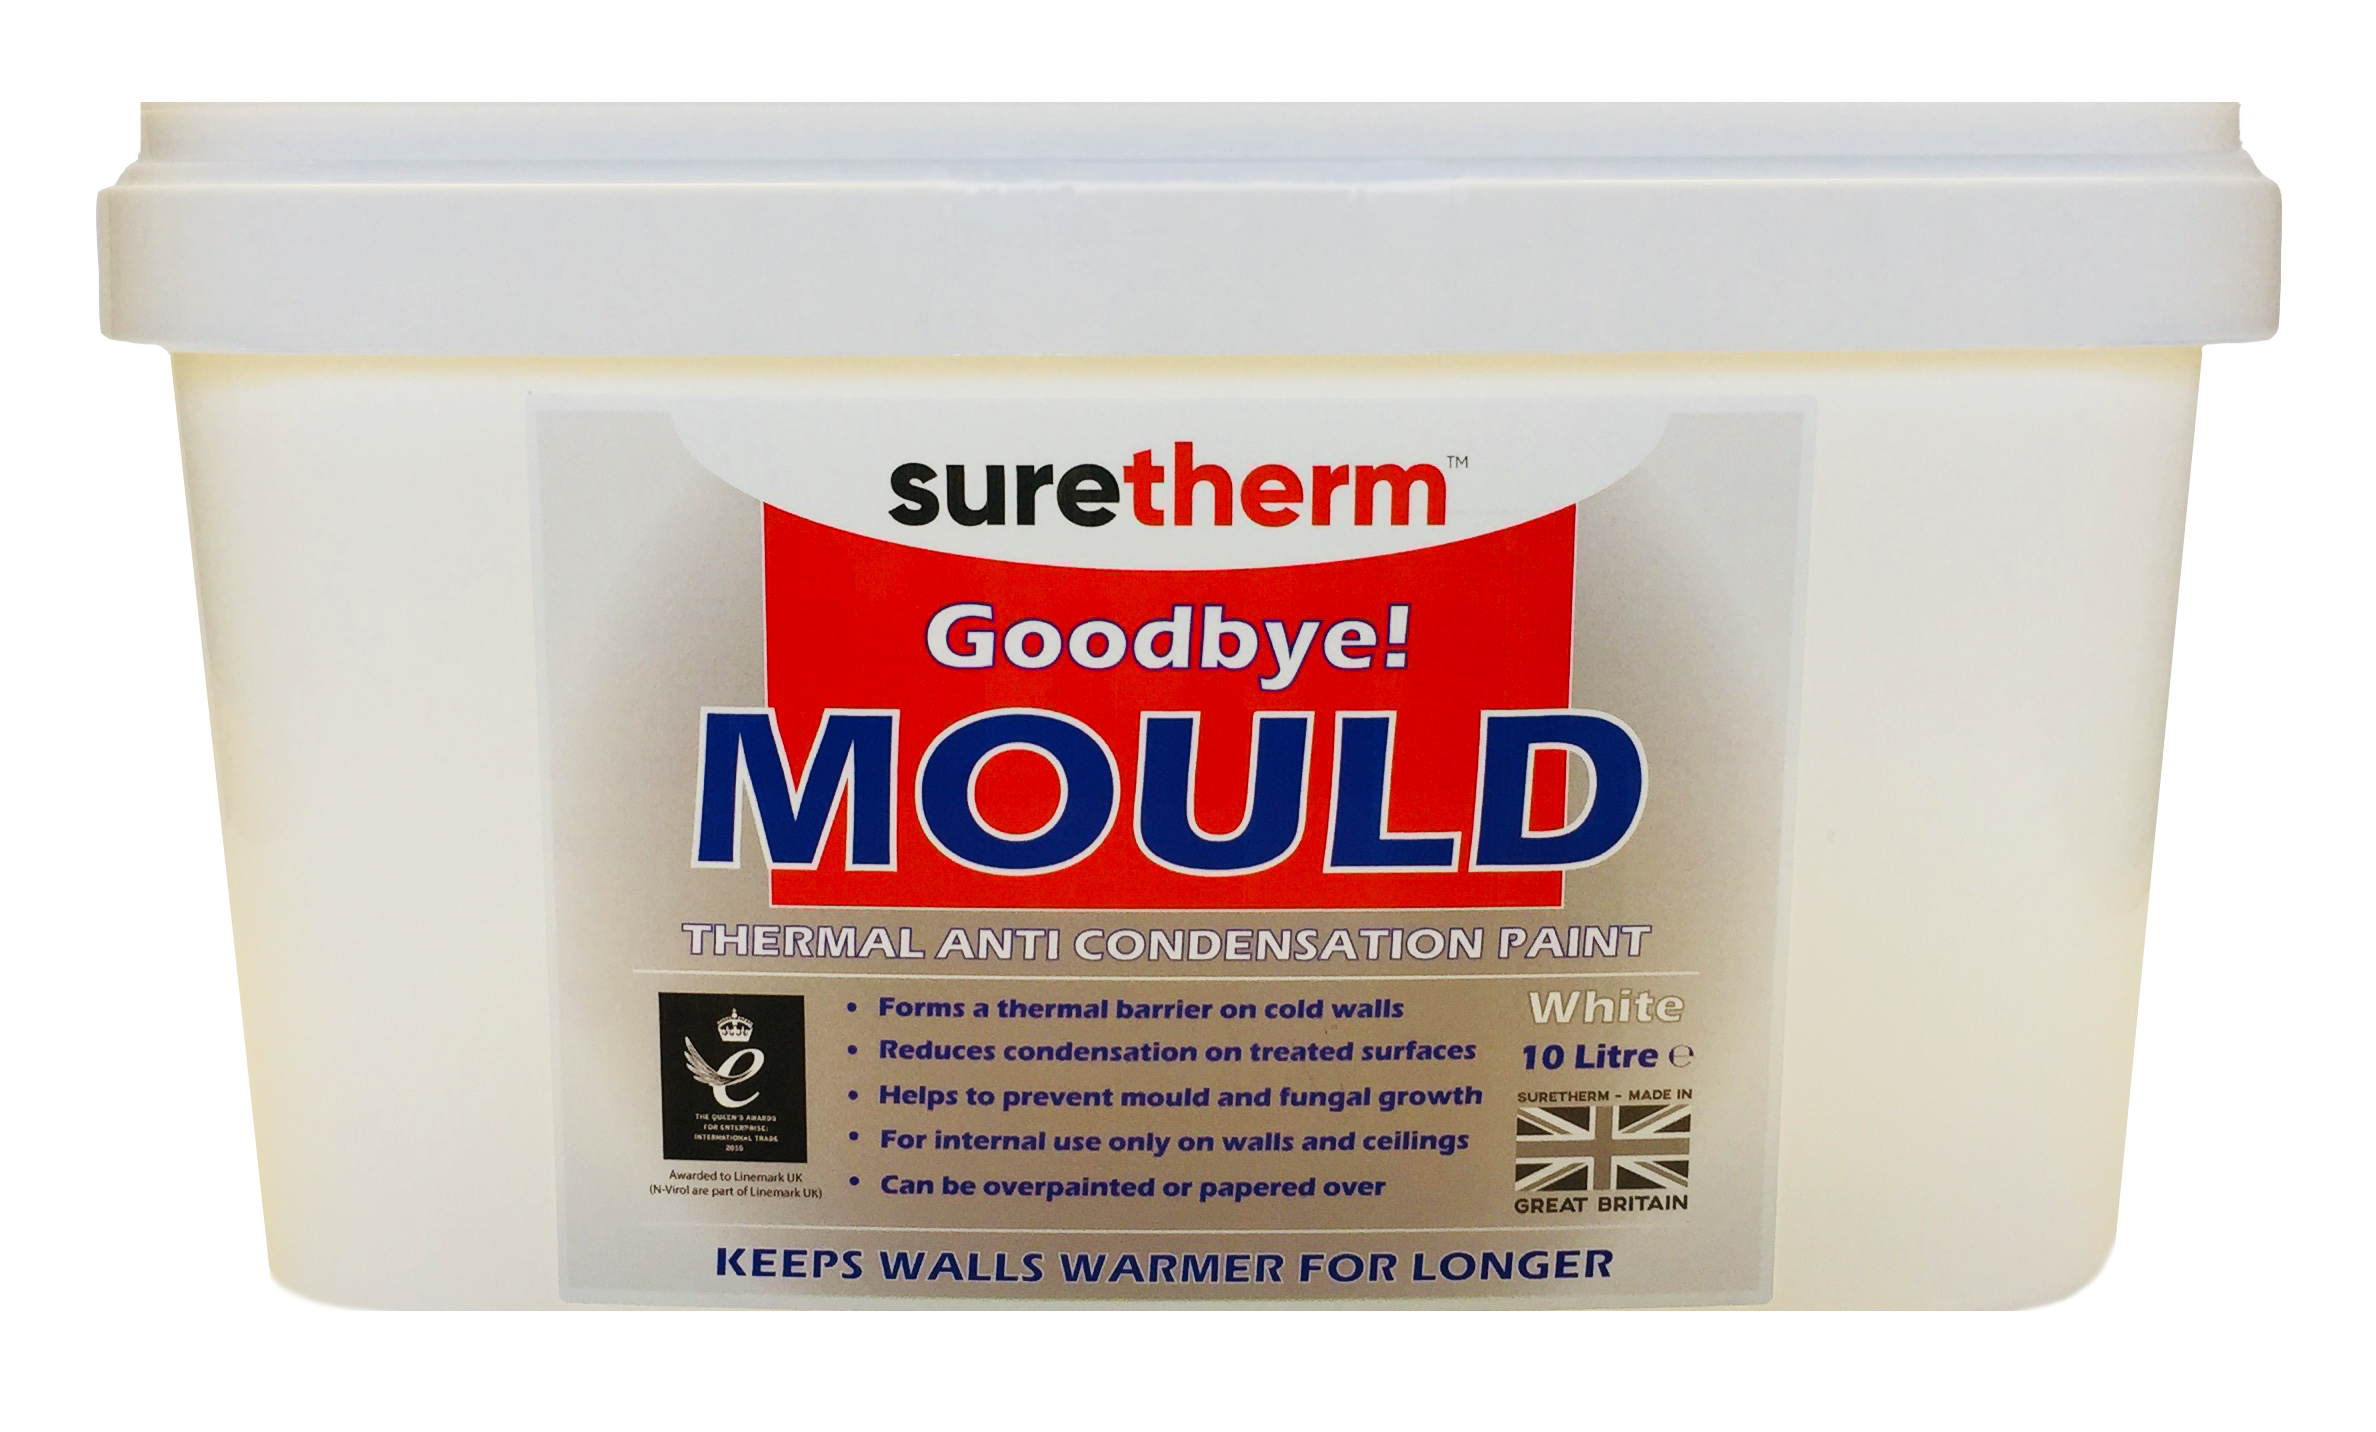 Suretherm Thermal Anti Condensation Paint 10 Litre